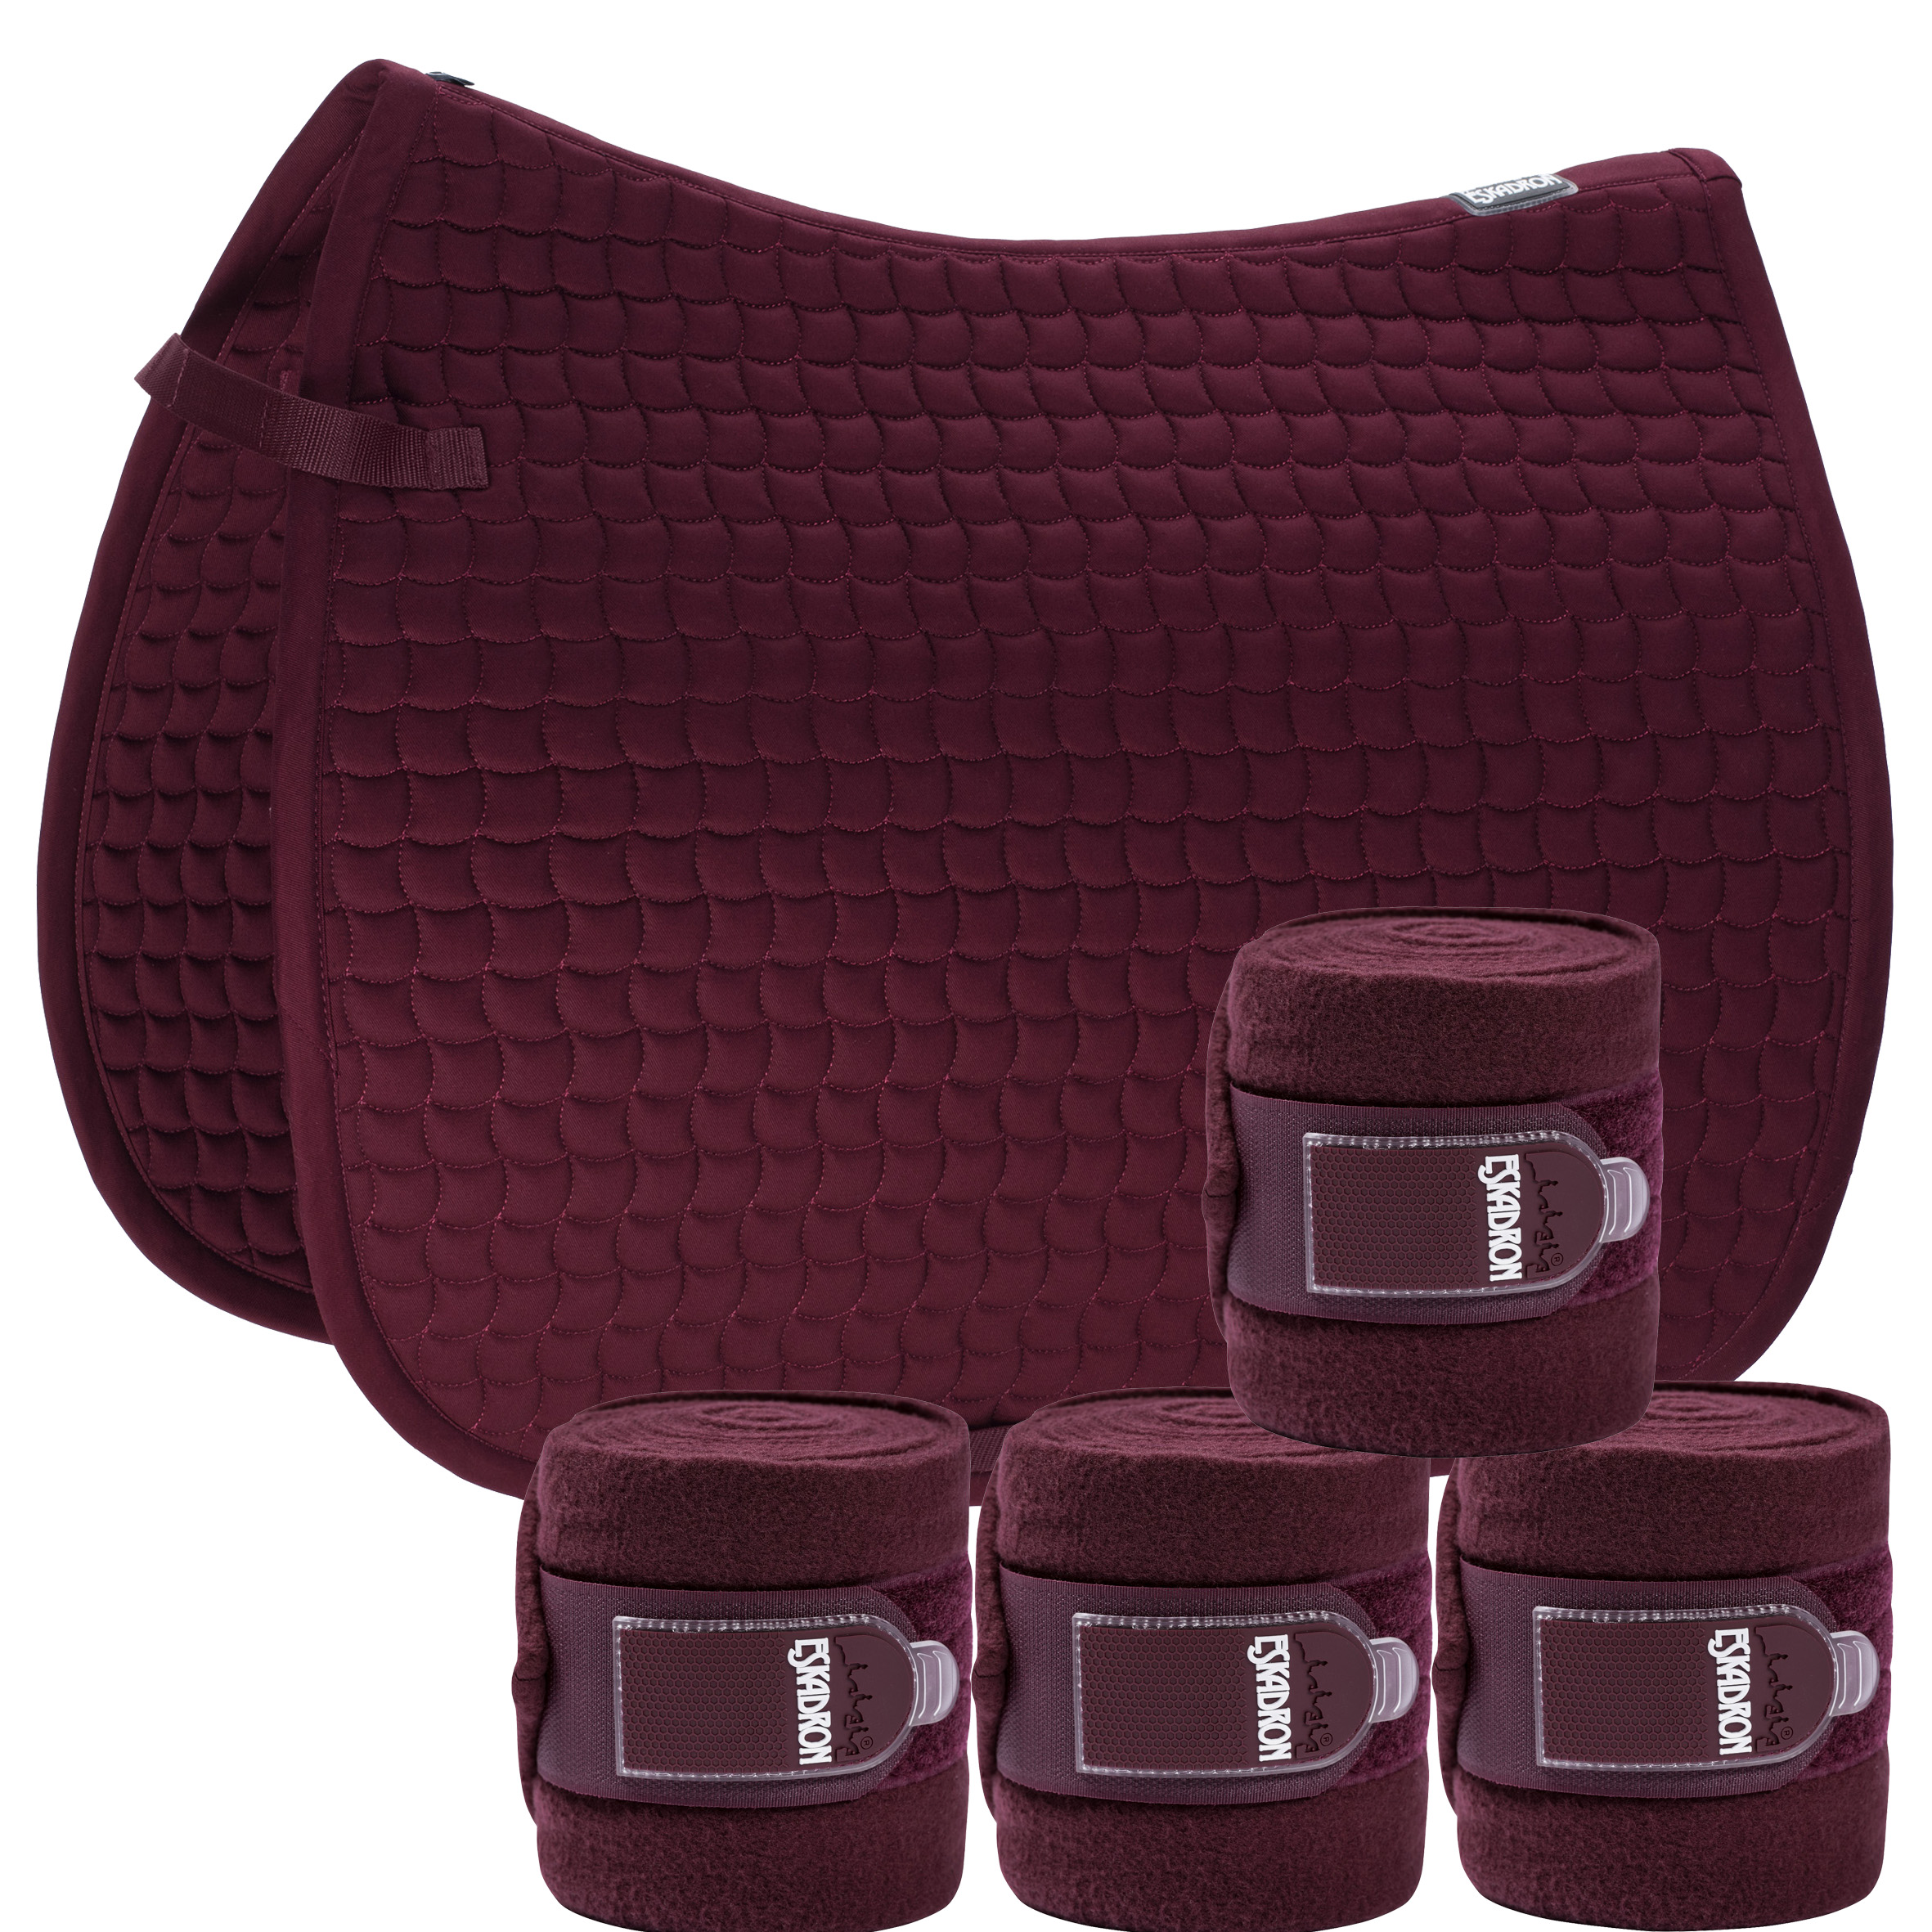 Set Eskadron Basic Cotton Schabracke mit Fleecebandagen in blackberry